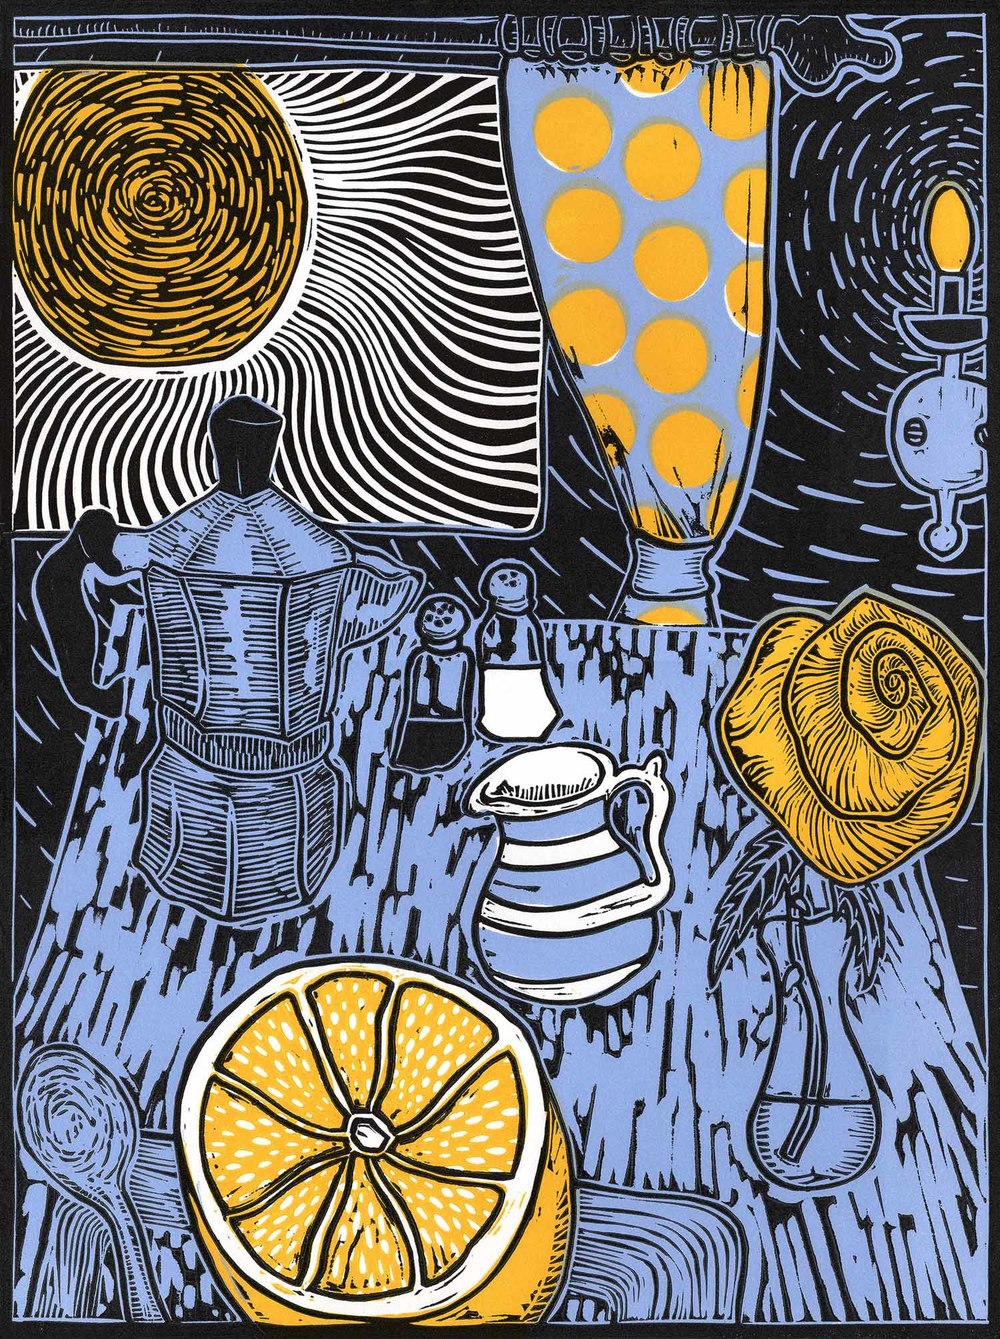 """Still Life With Sunshine"" – original linocut print limited edition of 55, 30 x 40 cm"